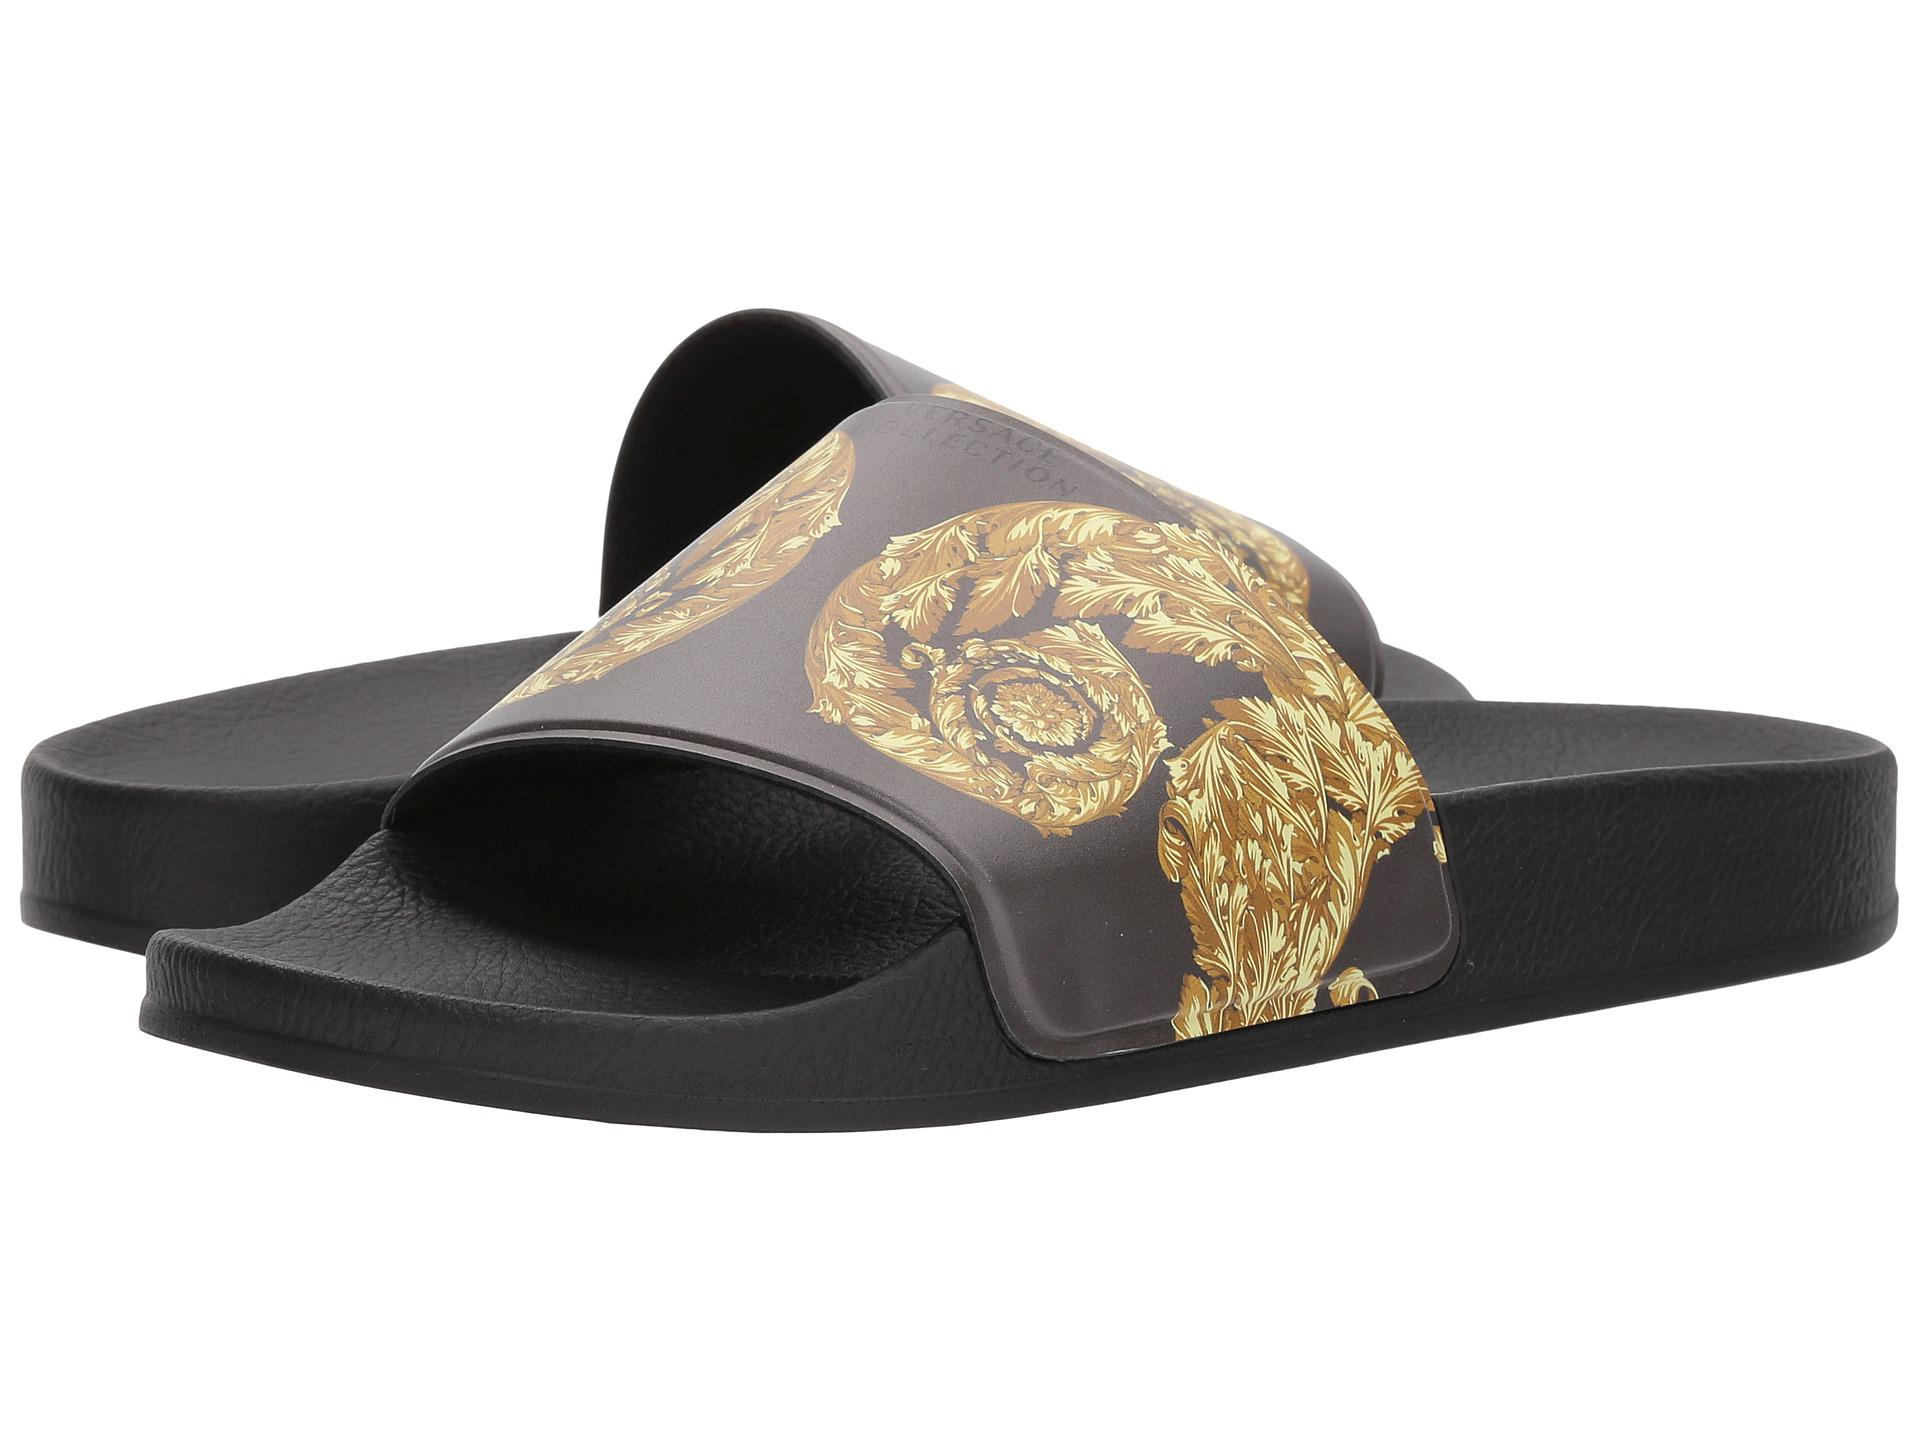 Versace baroque-print slides latest collections cheap price free shipping cheapest price discount shopping online sale pre order sale discounts rexRC